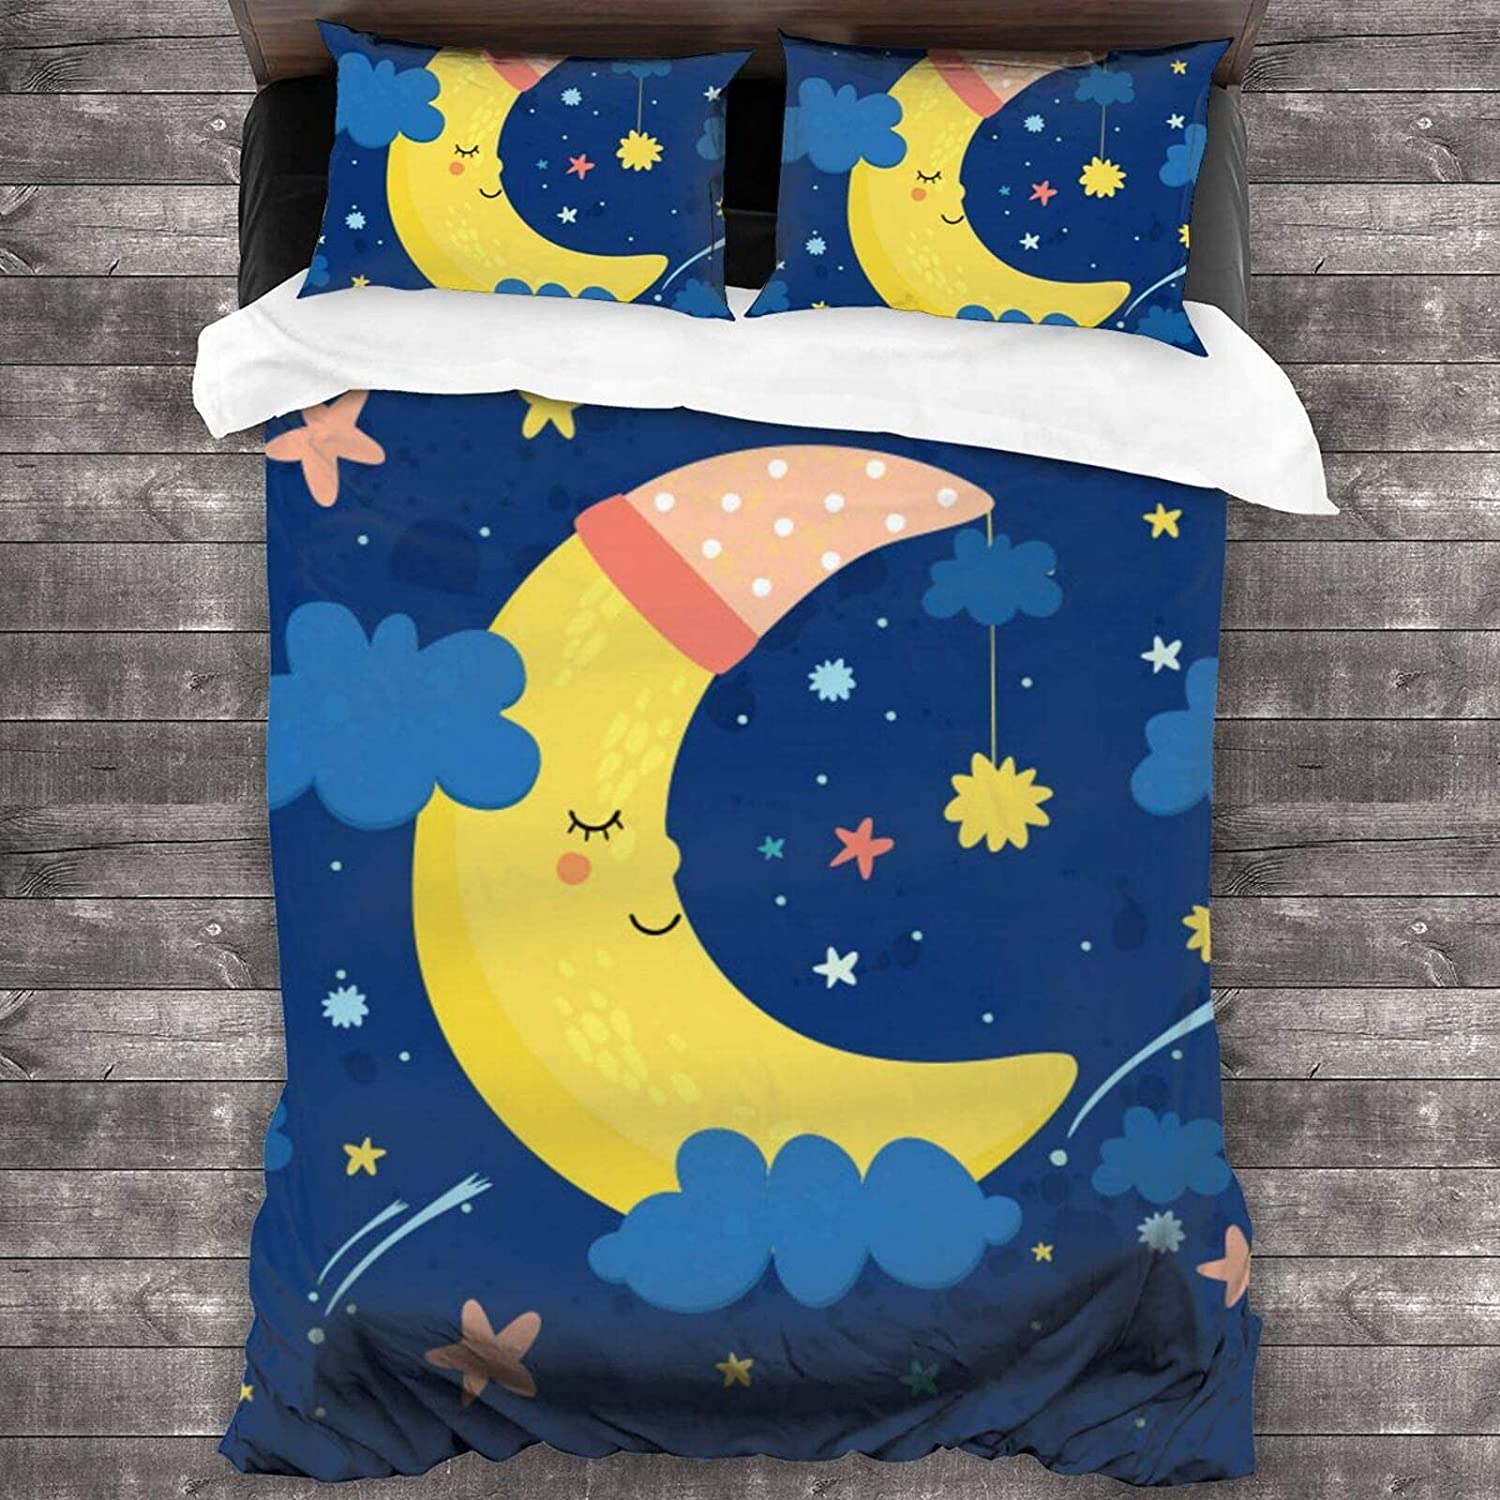 Superlatite PANILUR Bedding Duvet Cover 3 Piece The Great interest in Sets Moon Sky is